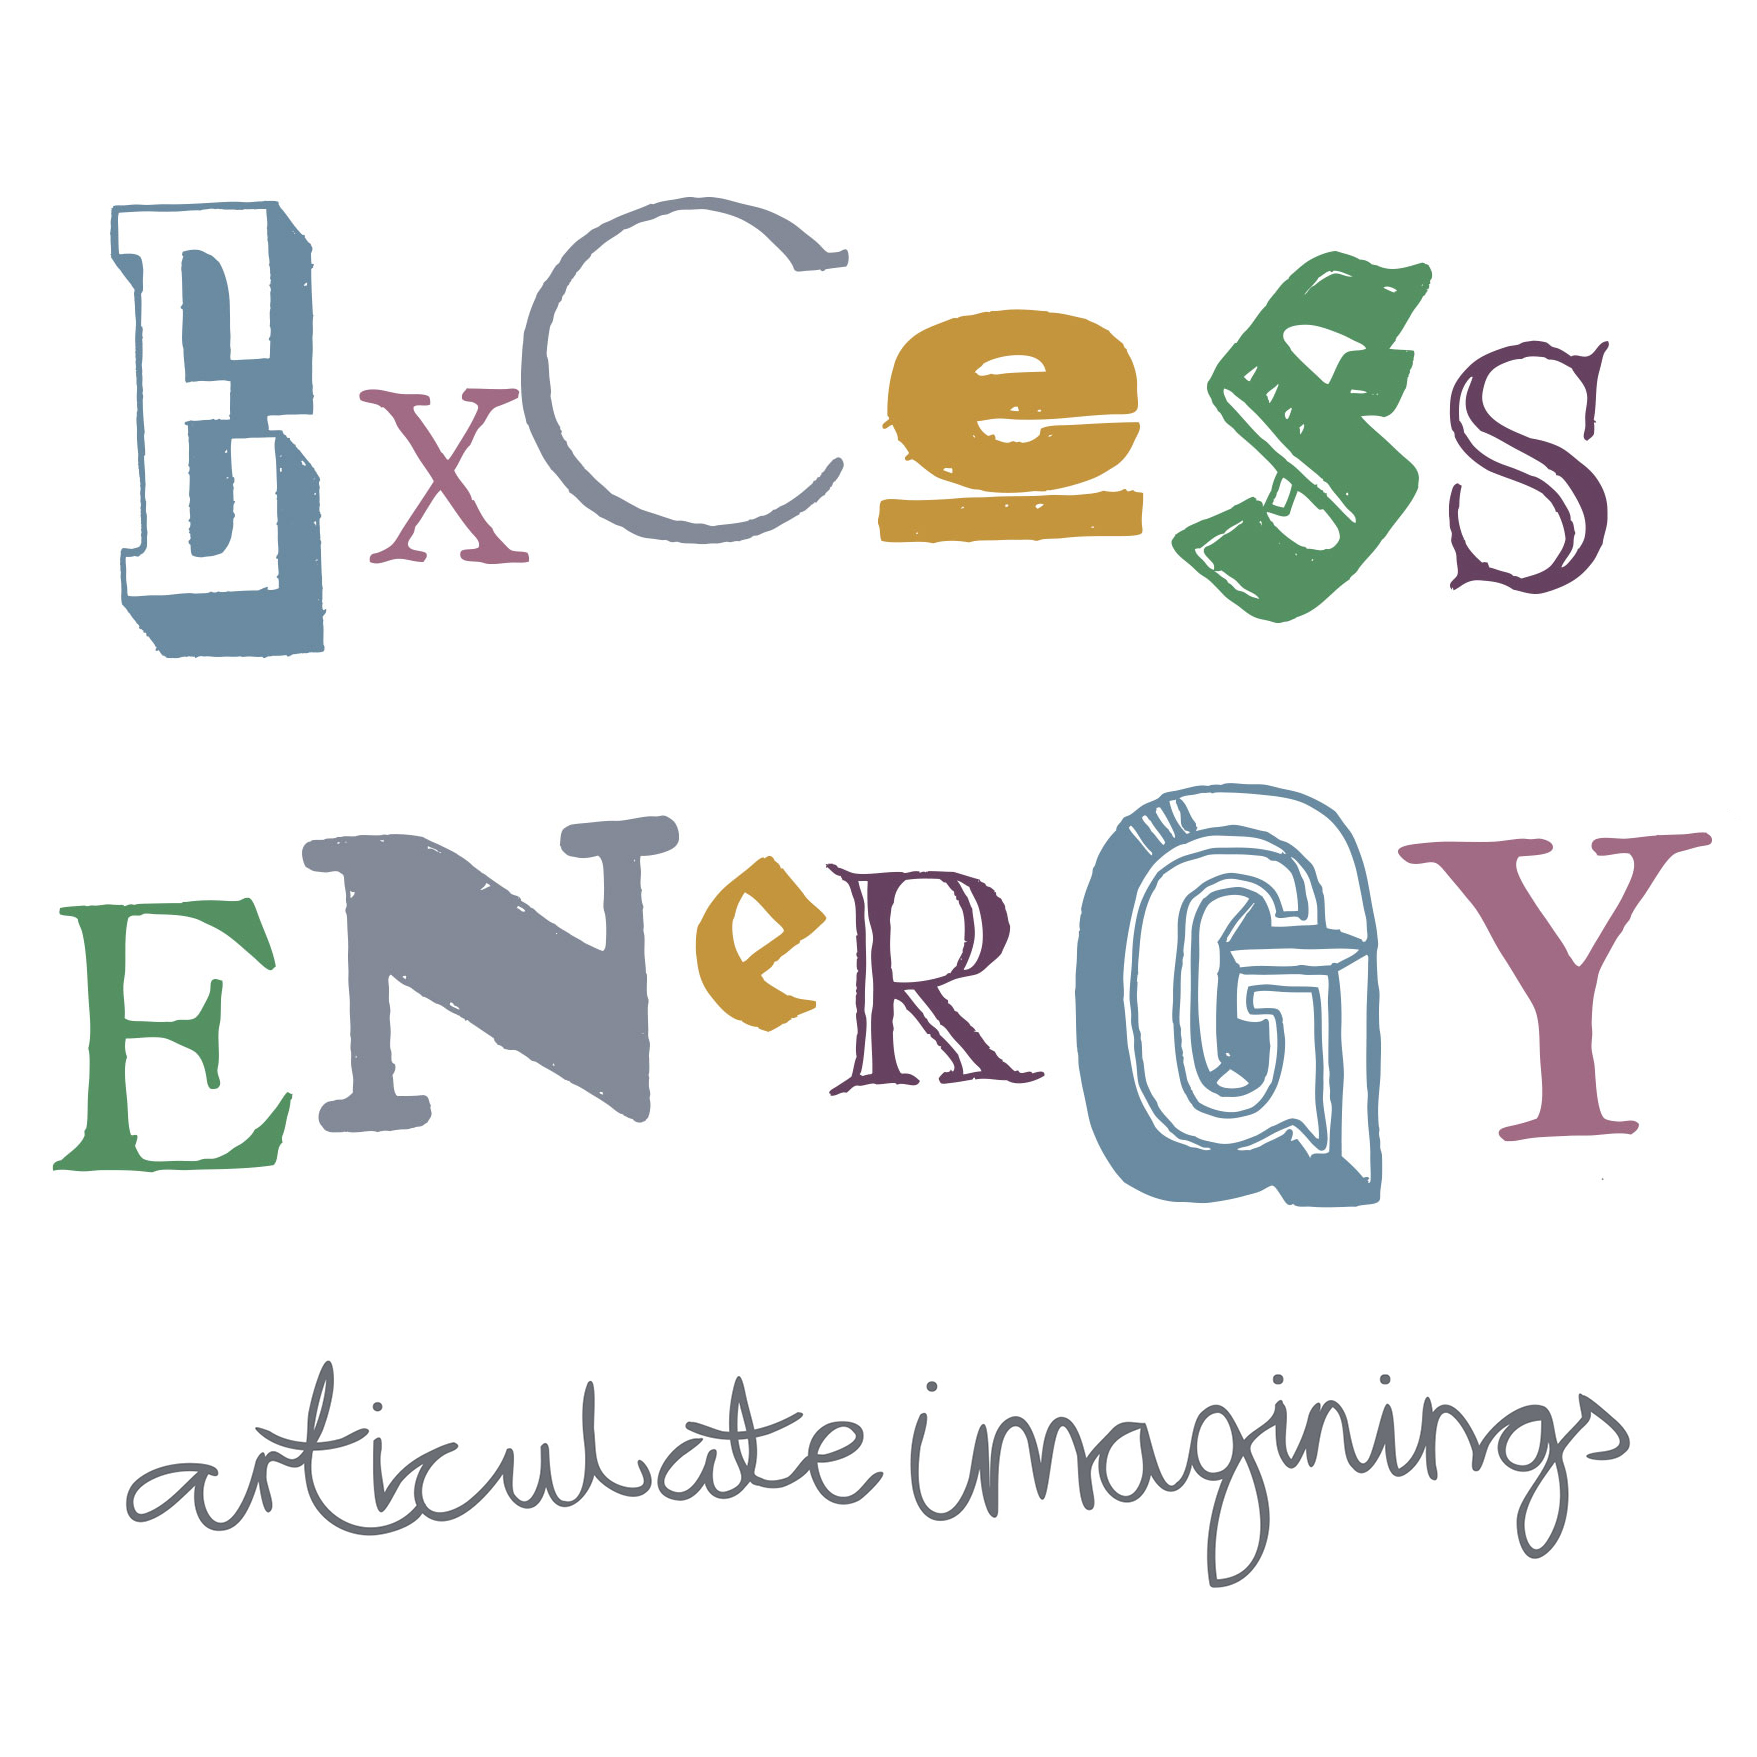 Excess Energy